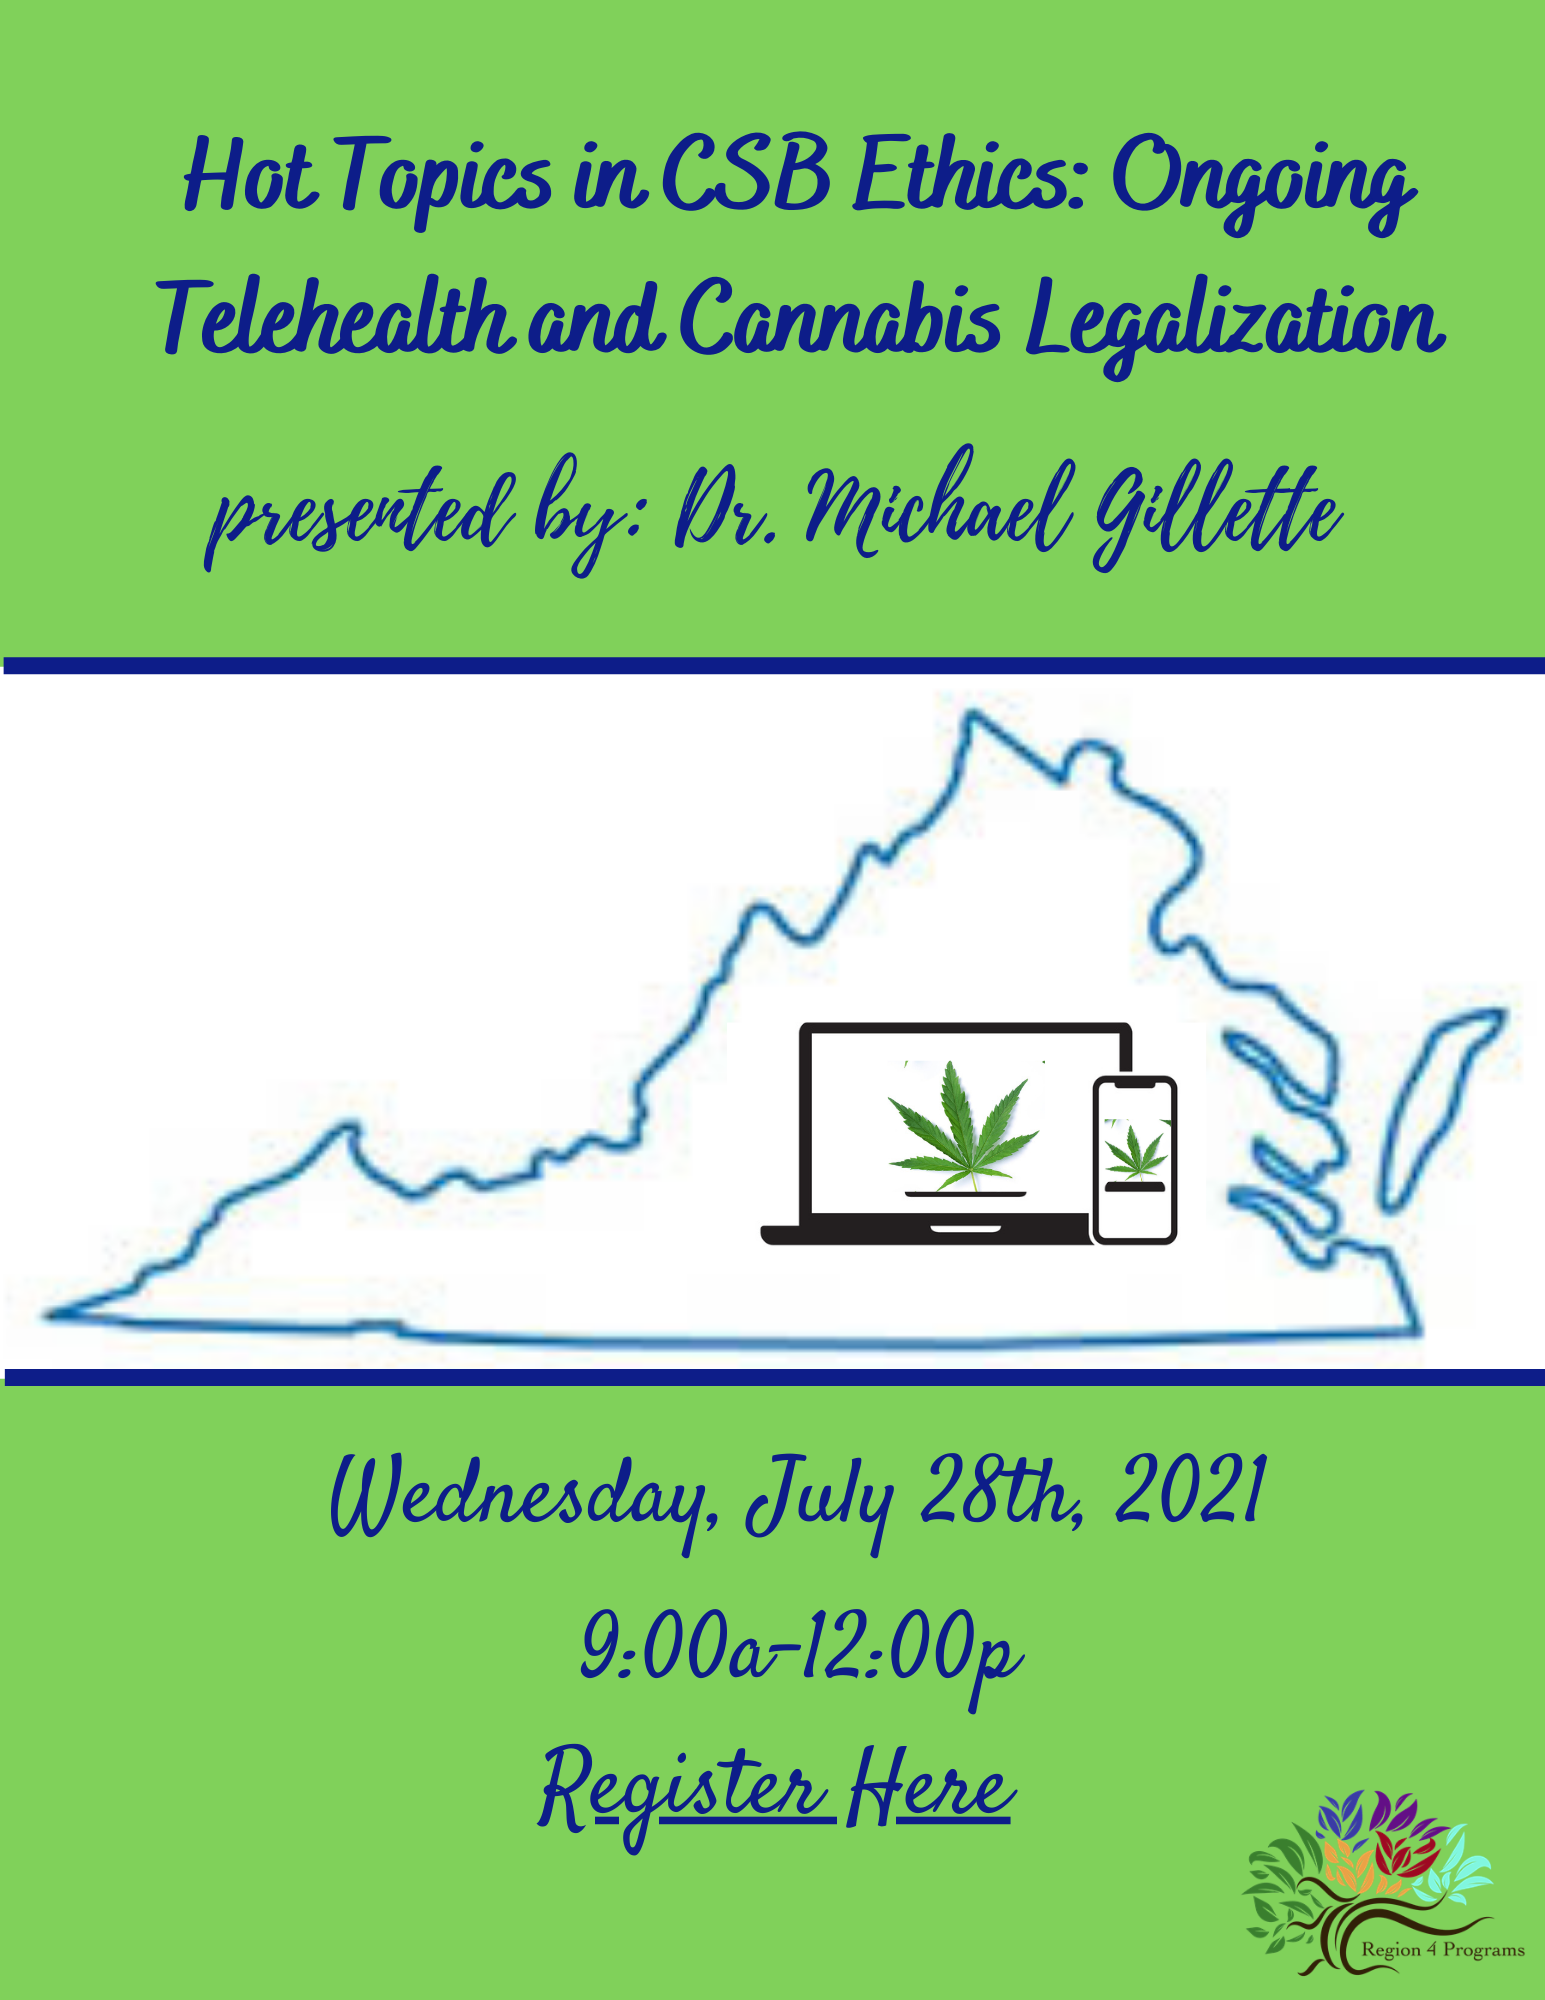 Hot-Topics-in-CSB-Ethics-Ongoing-Telehealth-and-Cannabis-Legalization-